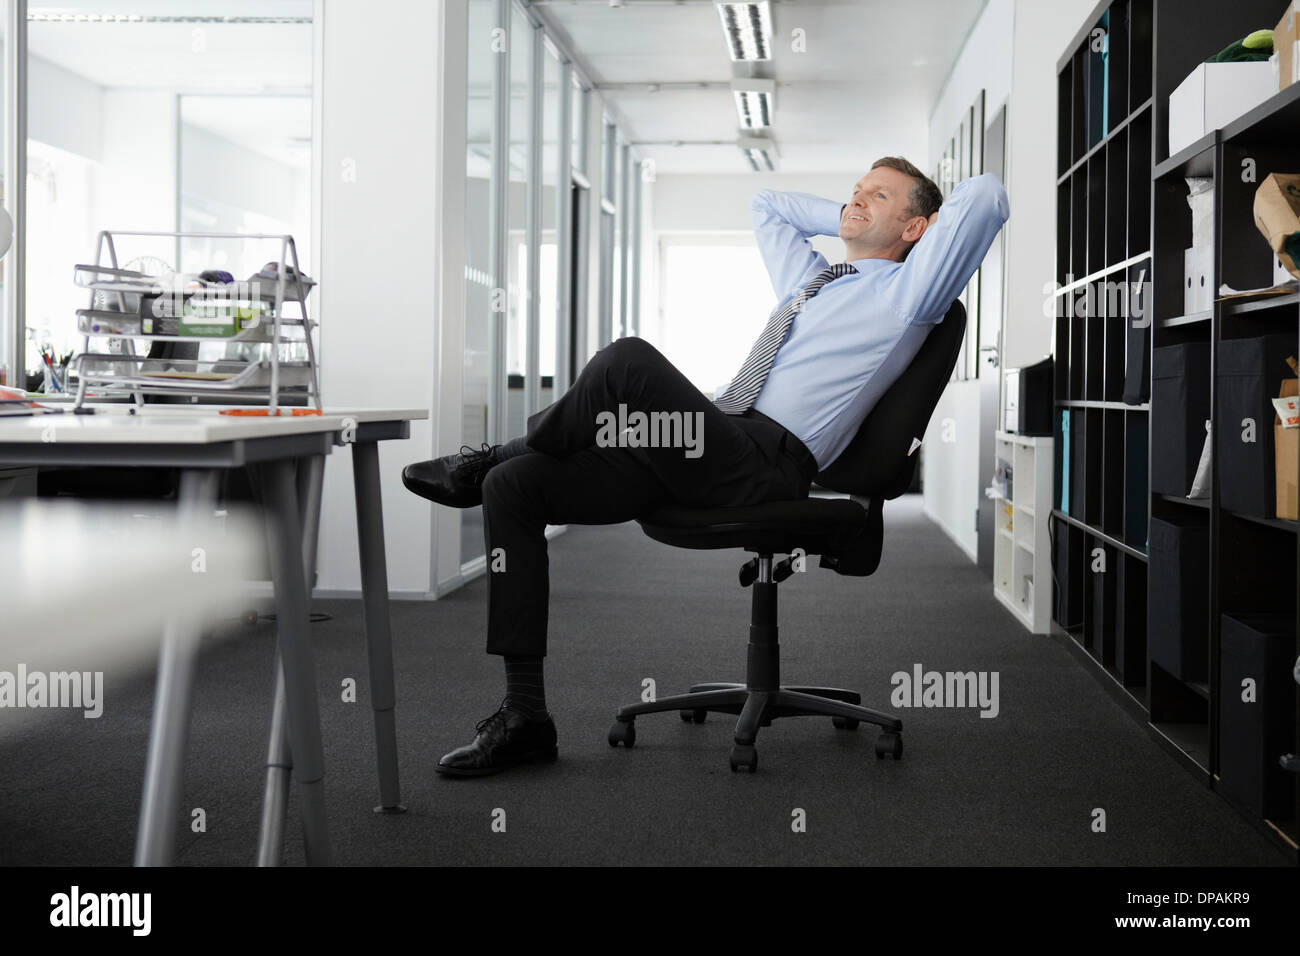 Mature businessman leaning back in office chair - Stock Image